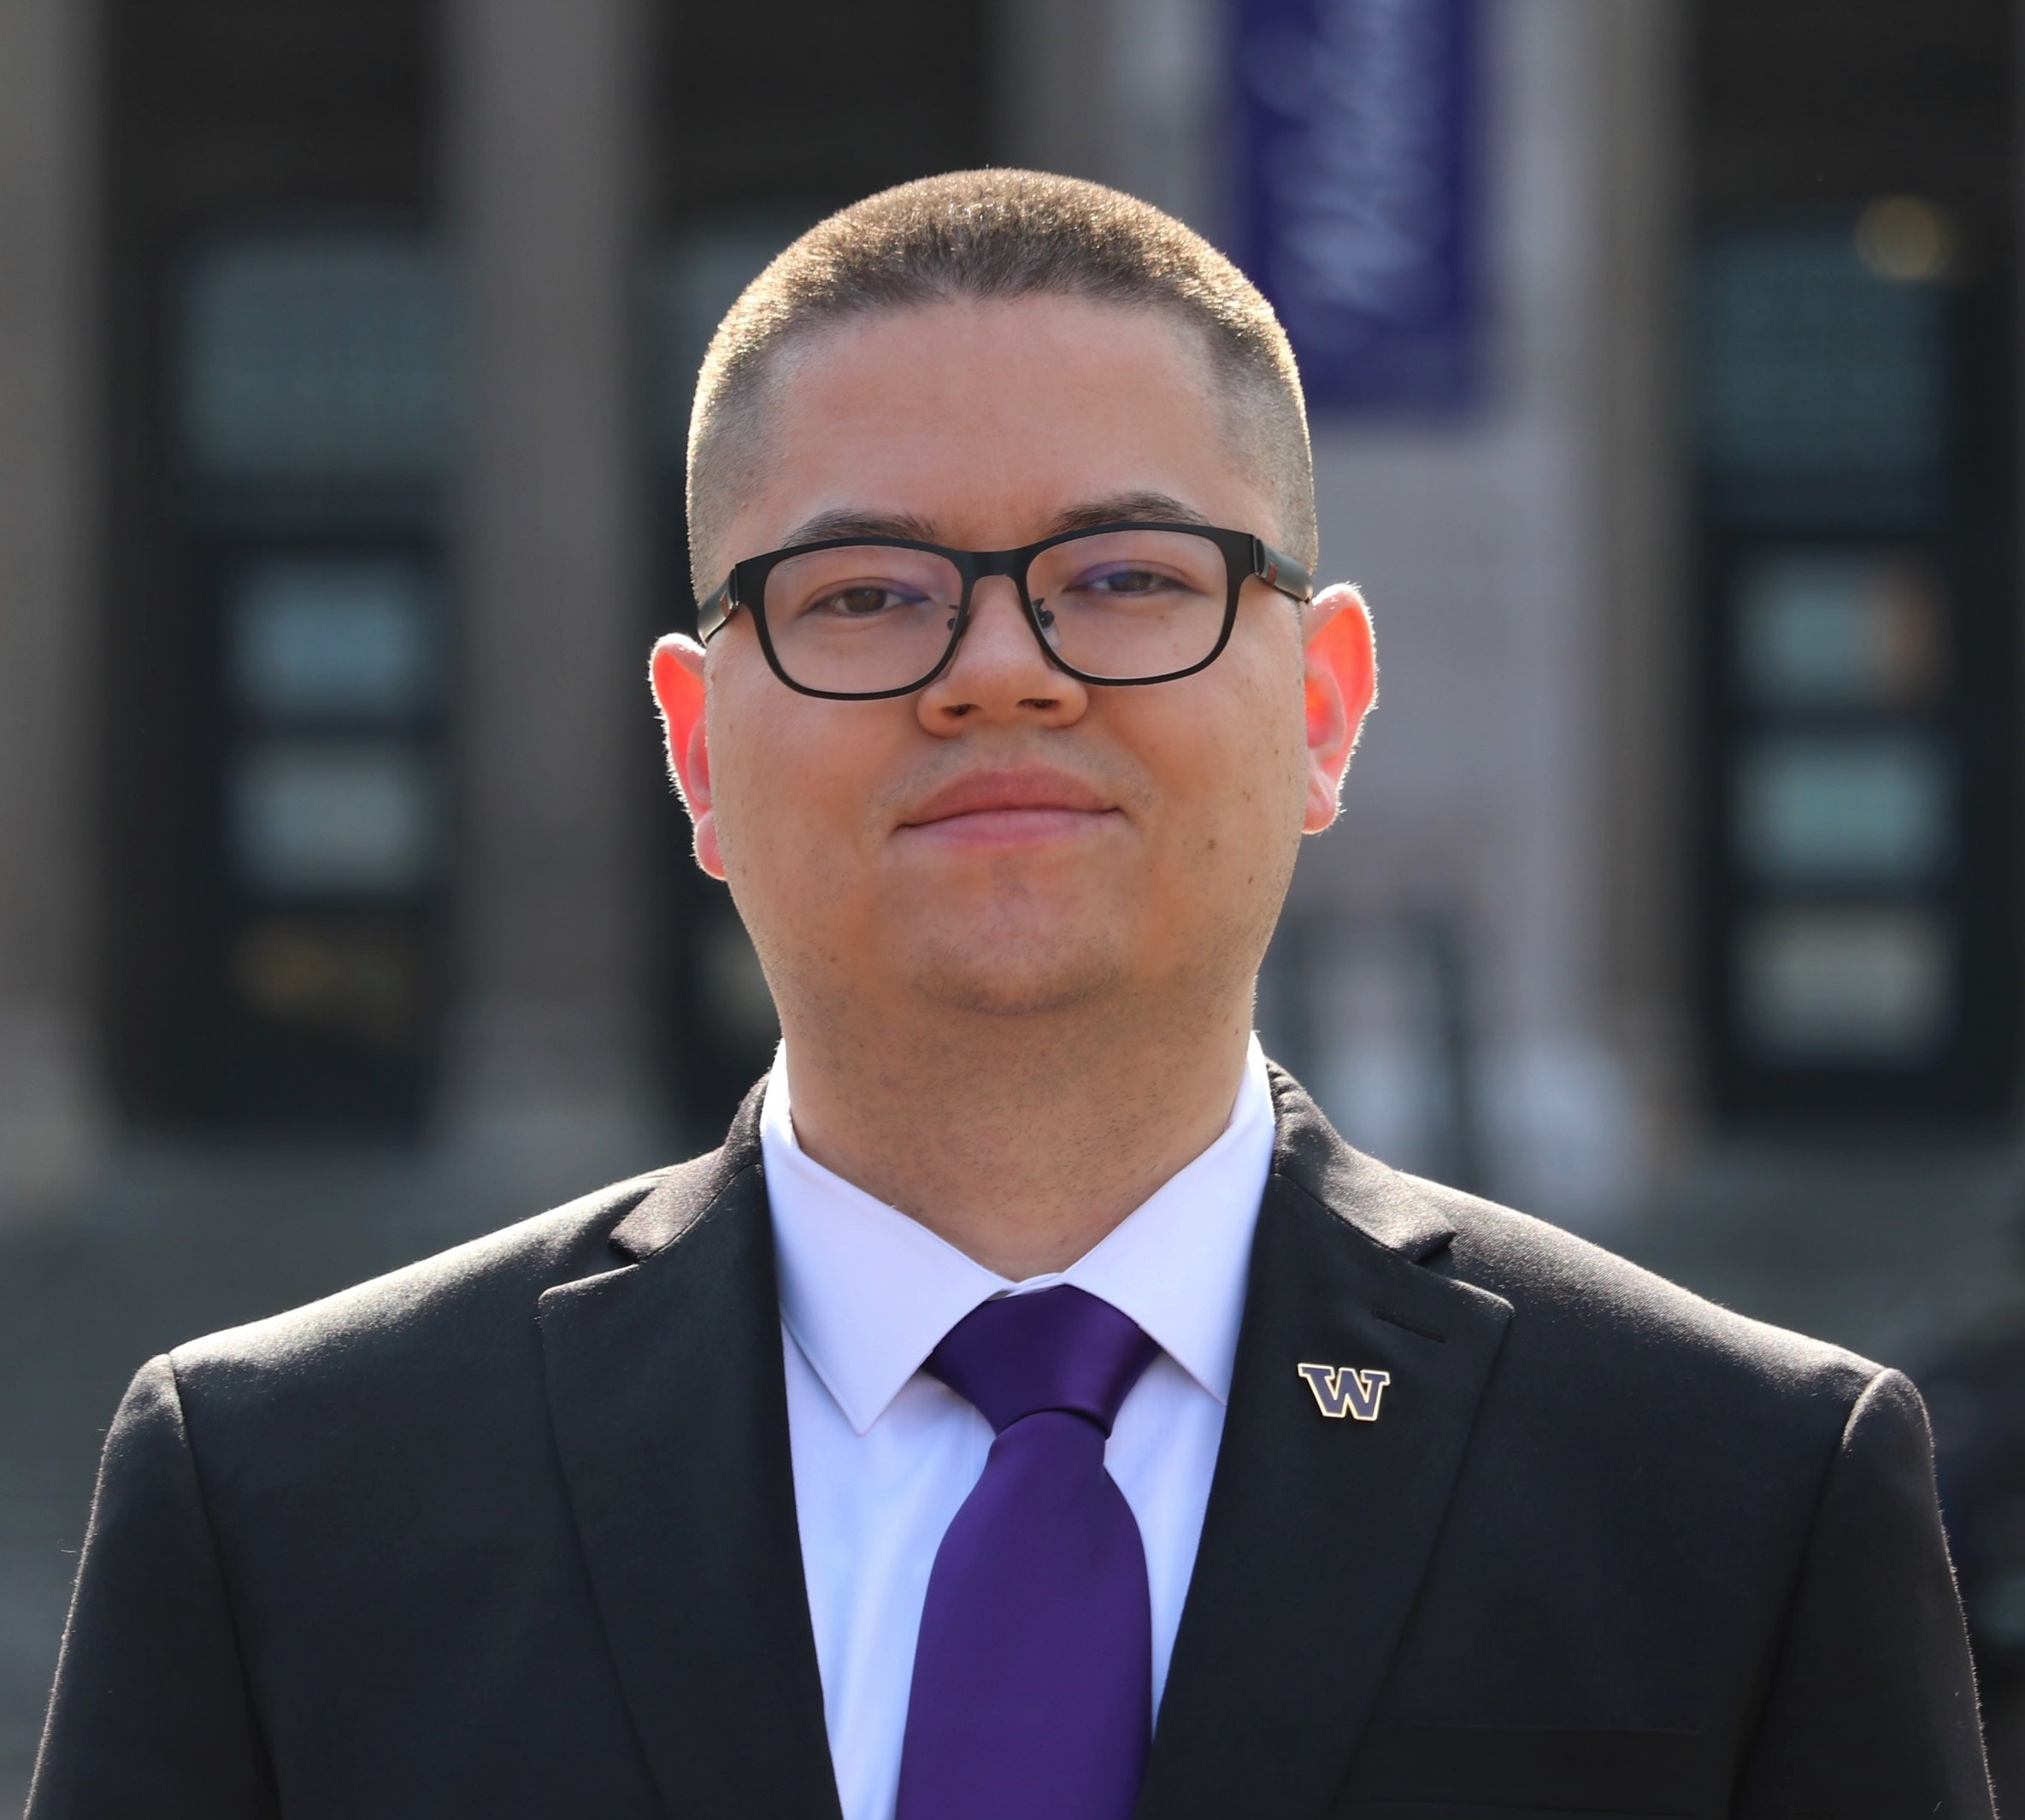 Link to article: Jaime Soto named director of OMA&D Multicultural Outreach & Recruitment